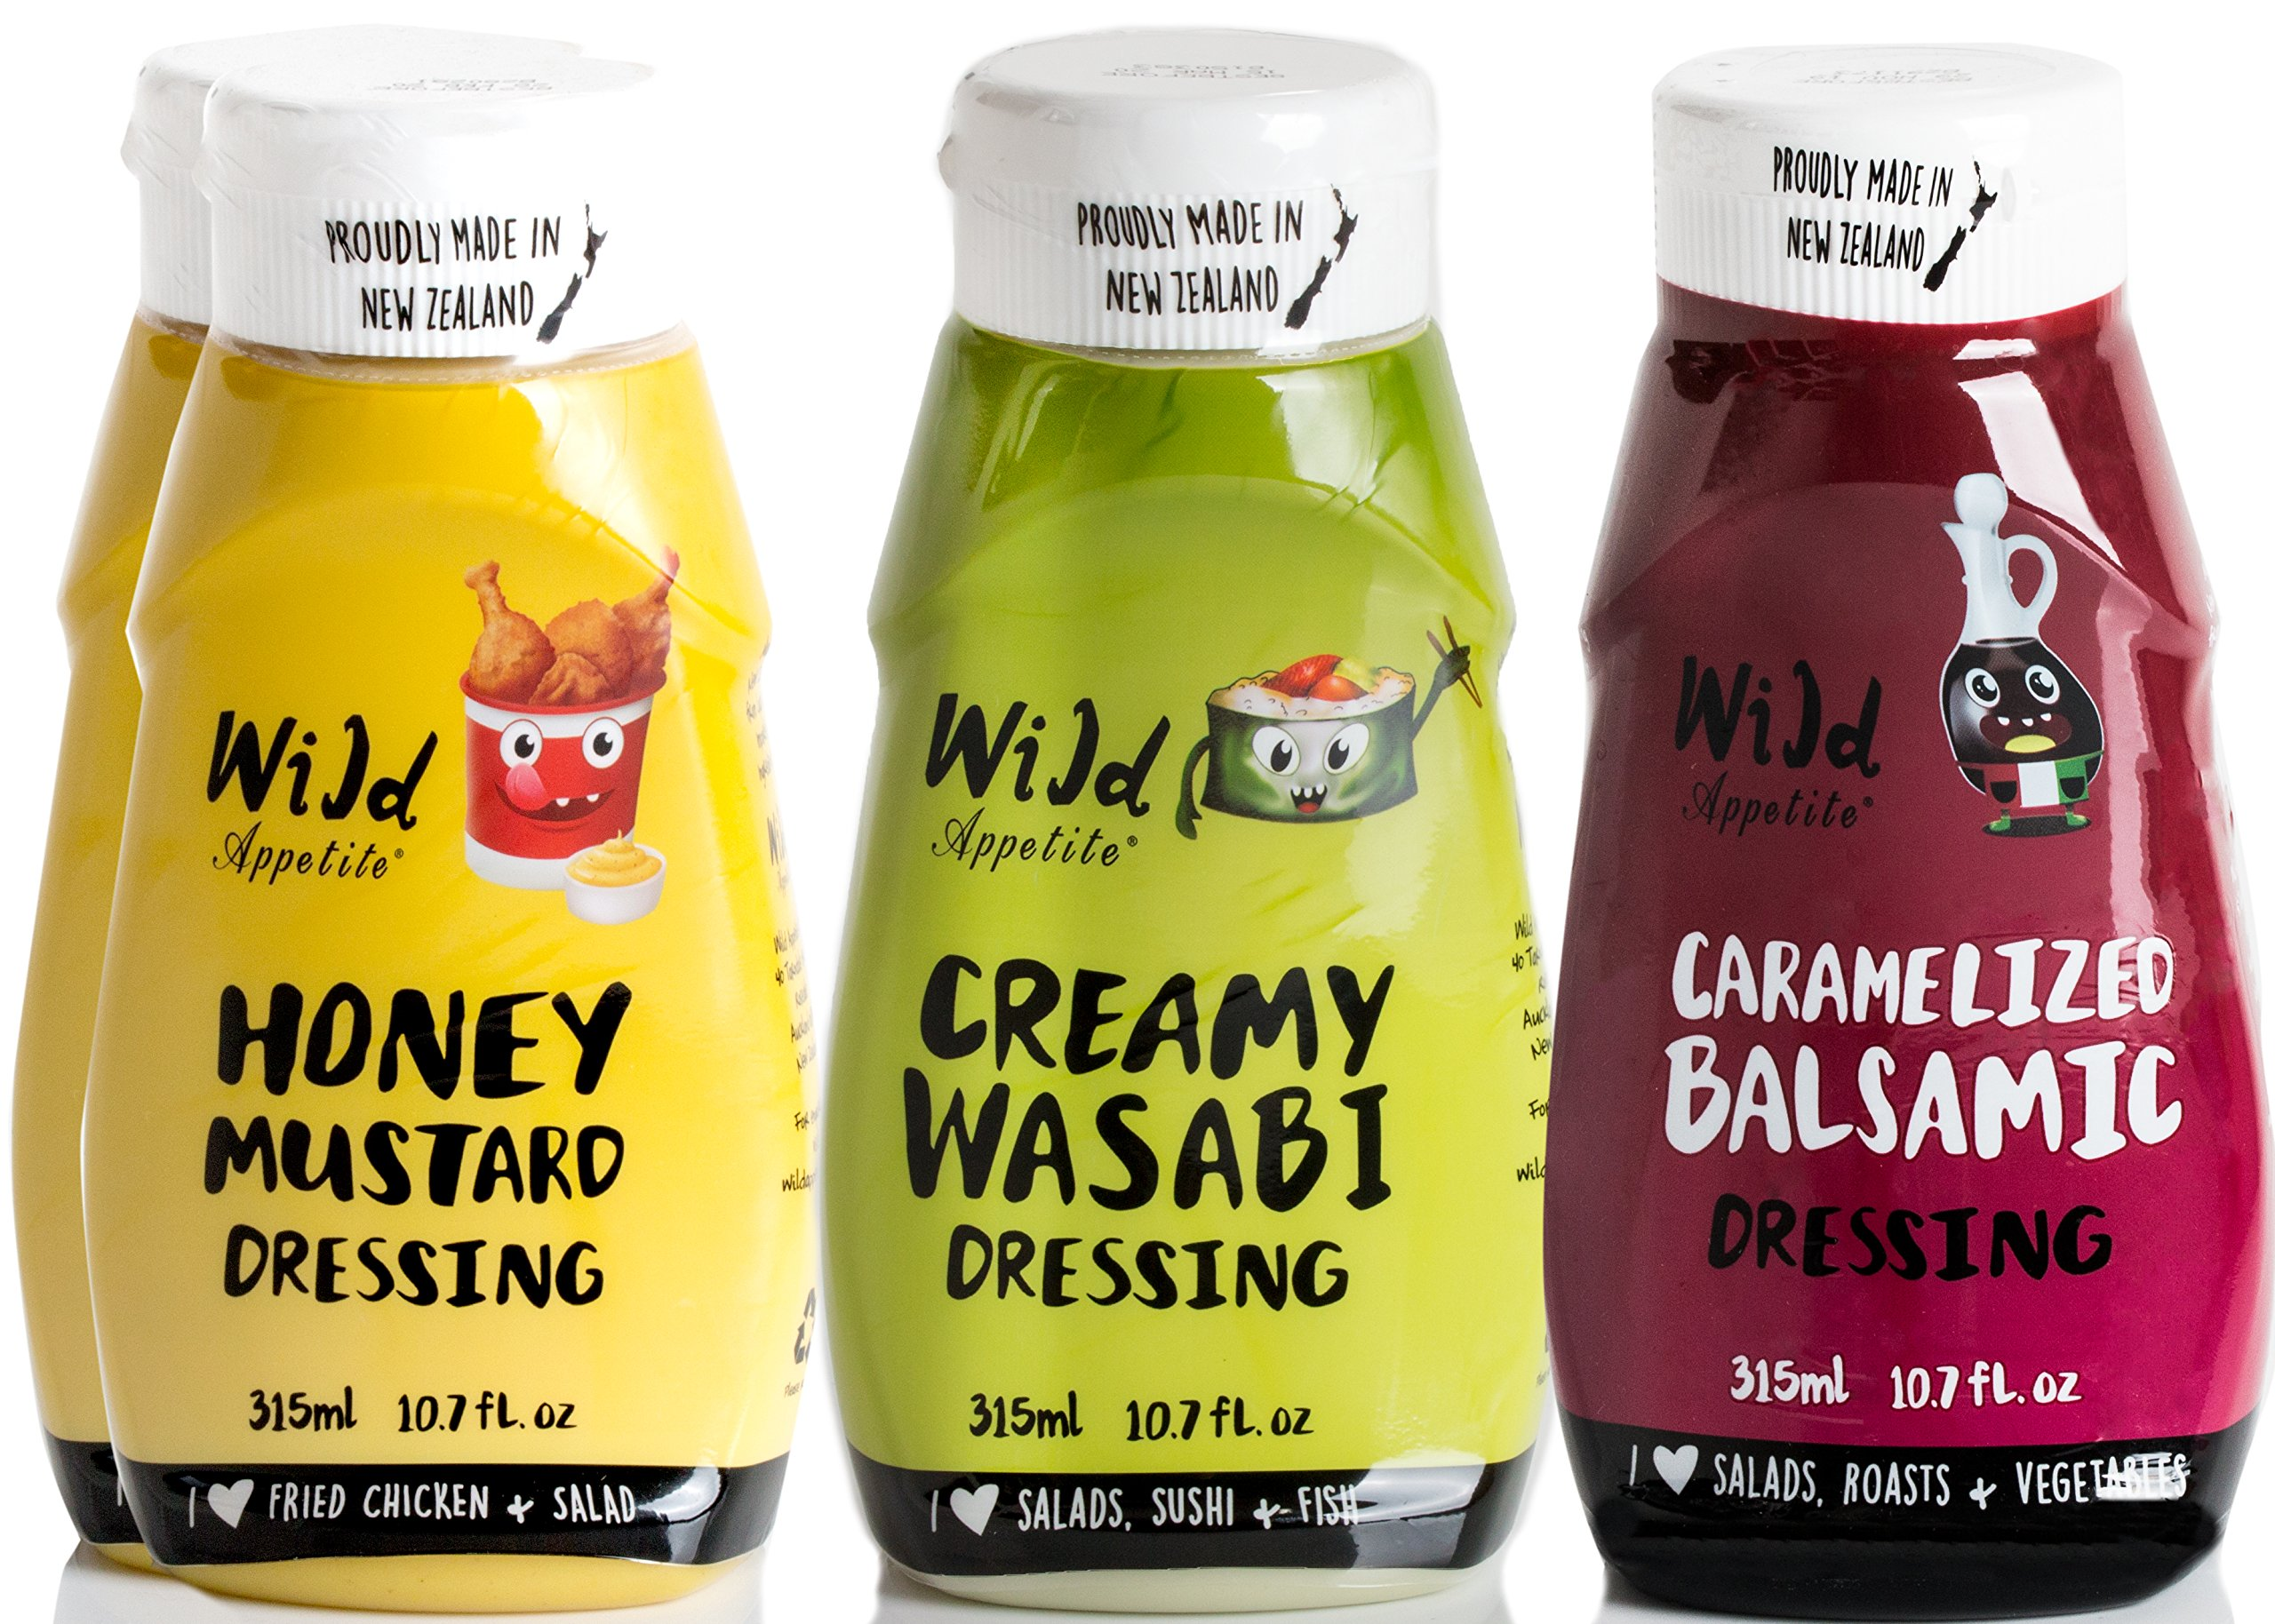 Wild Appetite Dressings 4 Pack, 2 x Honey Mustard and 1 x Wasabi Dressing and 1 x Caramelised Balsamic Dressing, 4 x 10.6oz